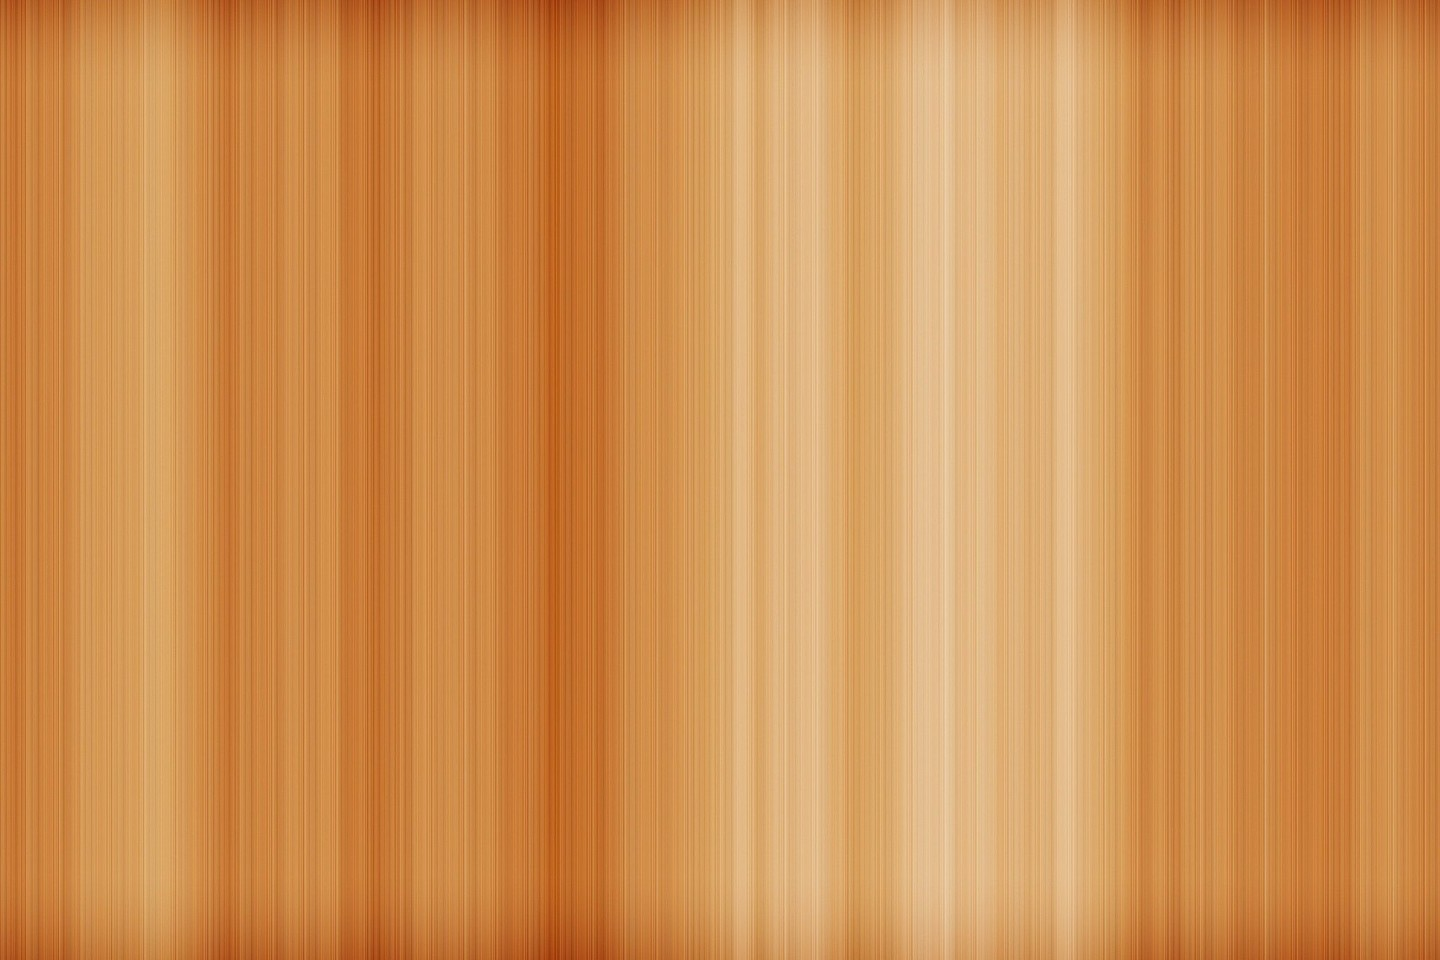 Light Textures Wood Panels Texture Wallpaper Allwallpaper In 2477